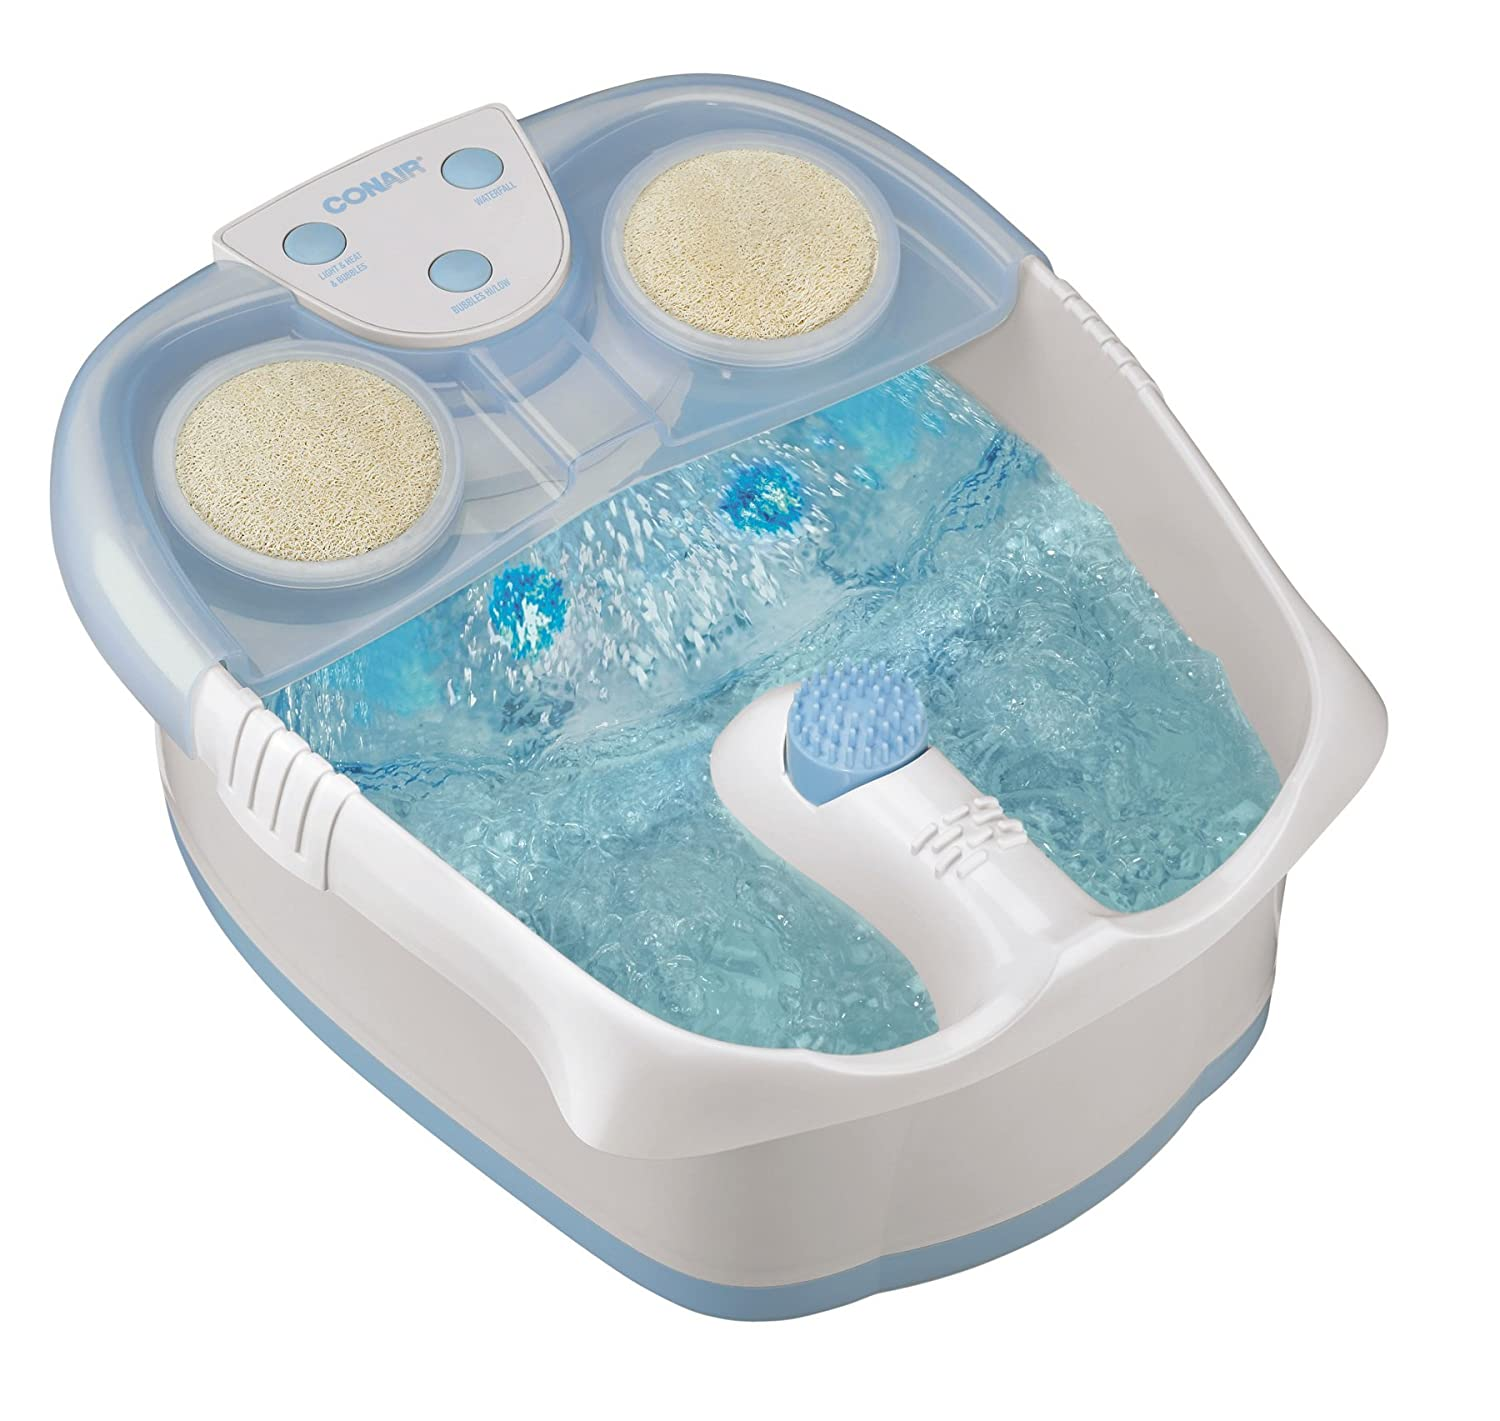 blue Conair Foot Pedicure Spa with Waterfall, Lights and Bubbles